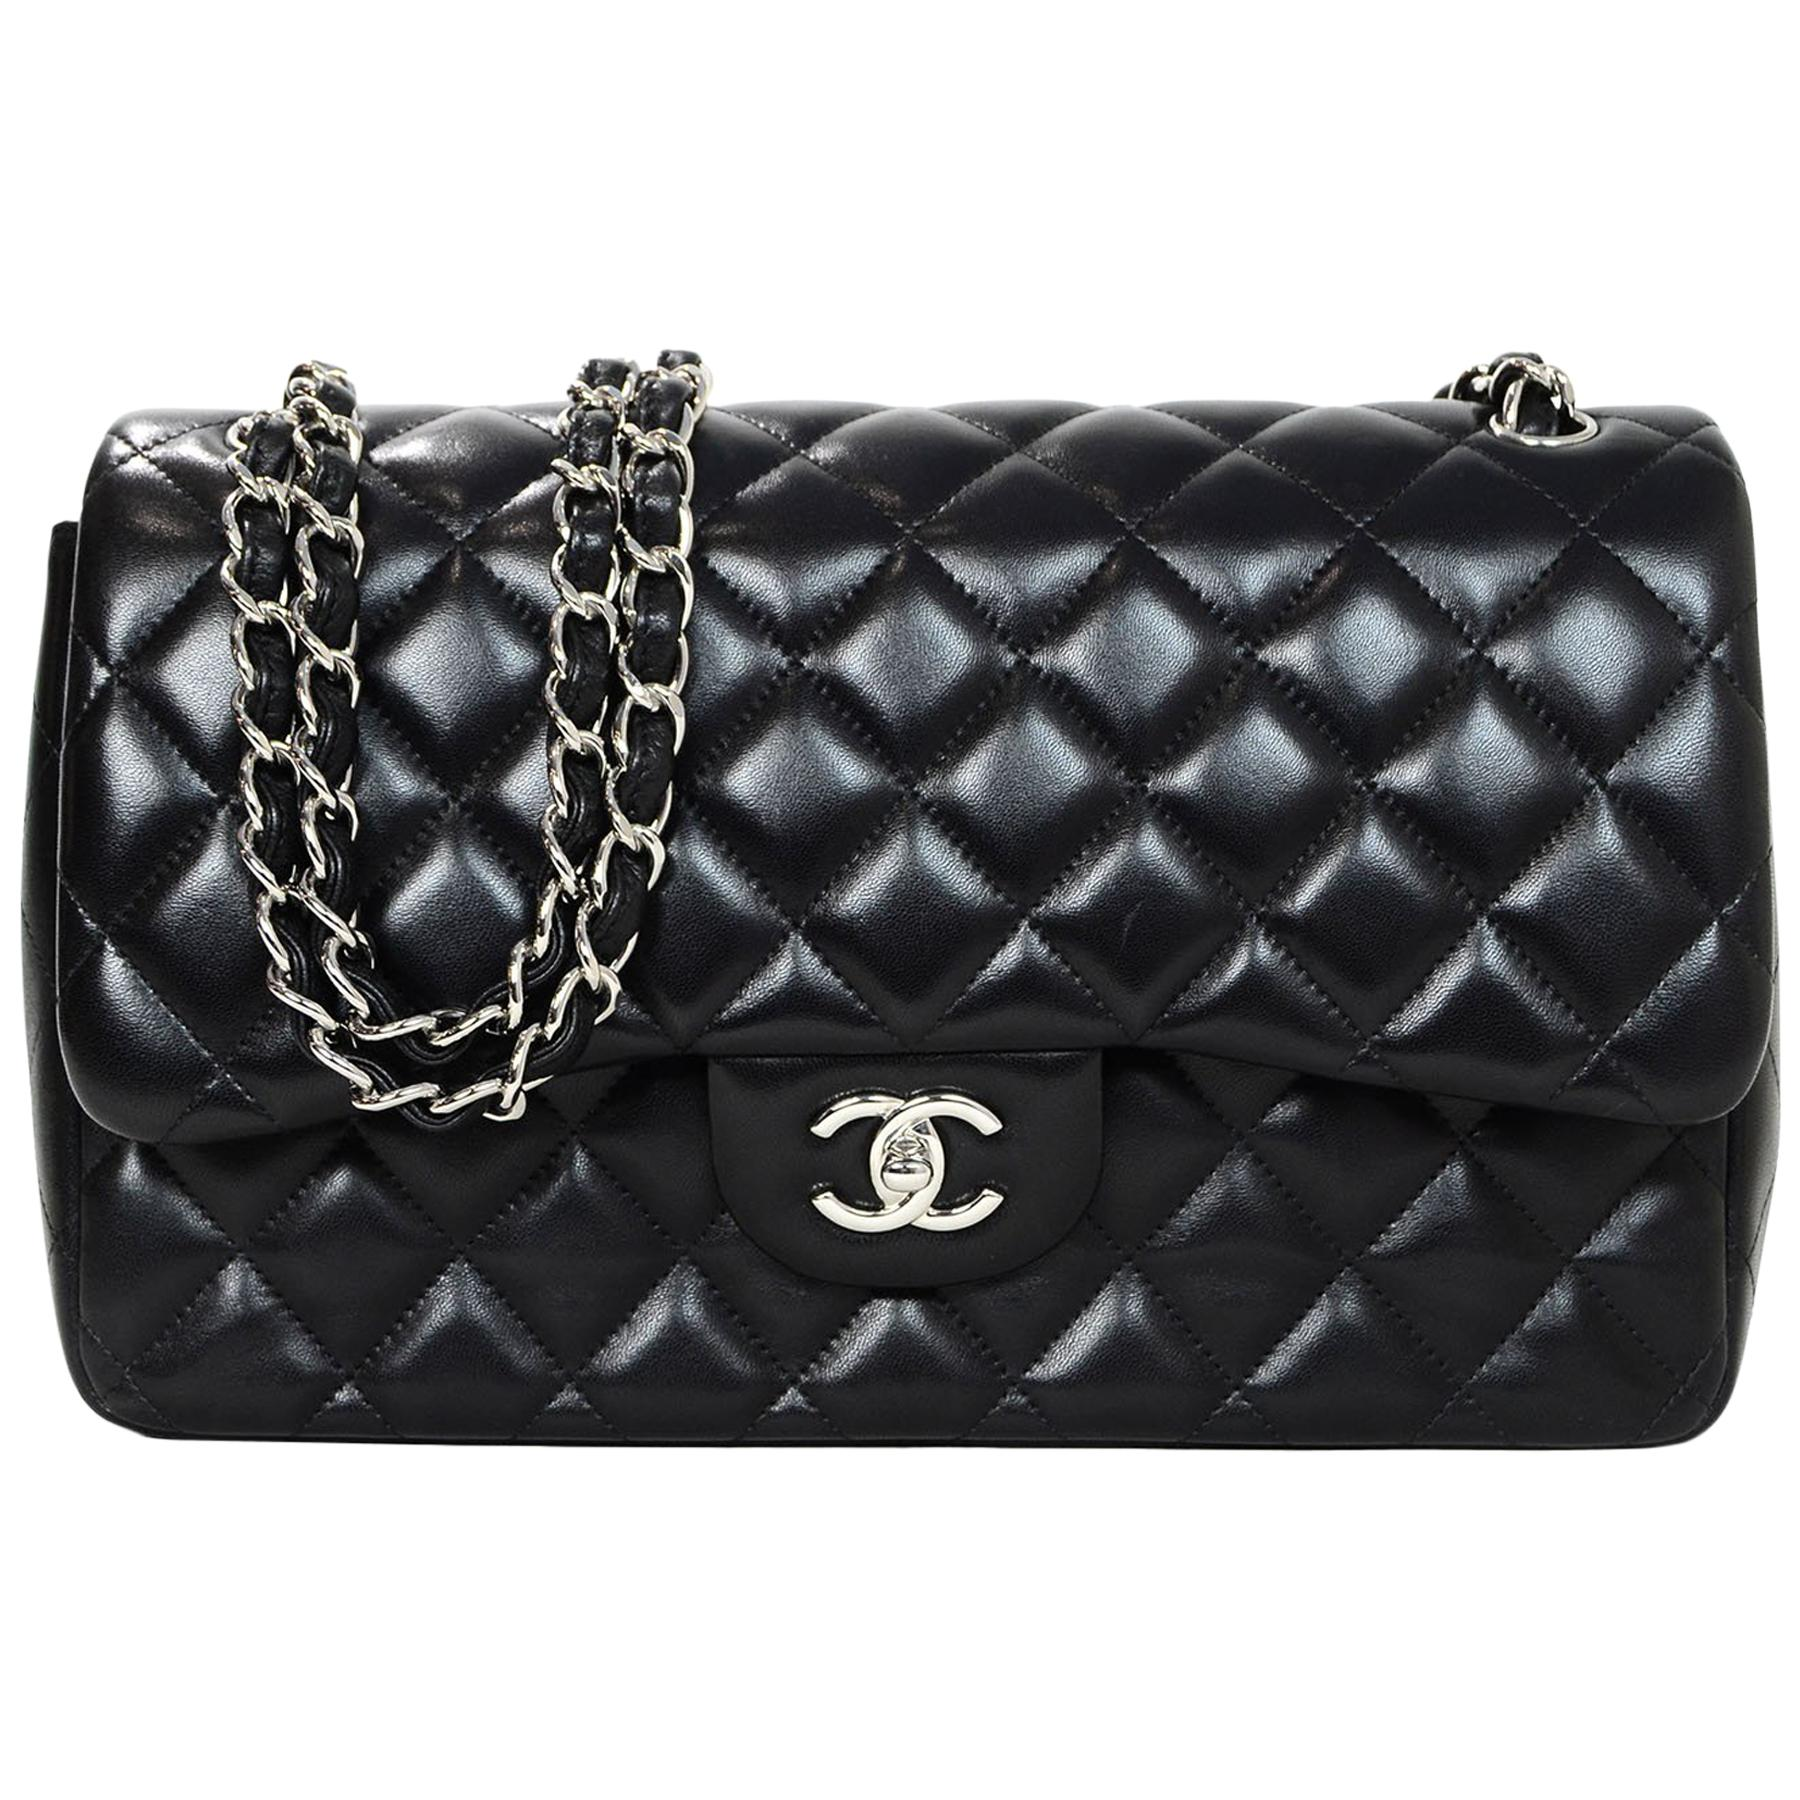 ef56b89f8b3c Chanel Black Caviar Leather Quilted Single Flap Jumbo Classic Bag W  SHW  For Sale at 1stdibs